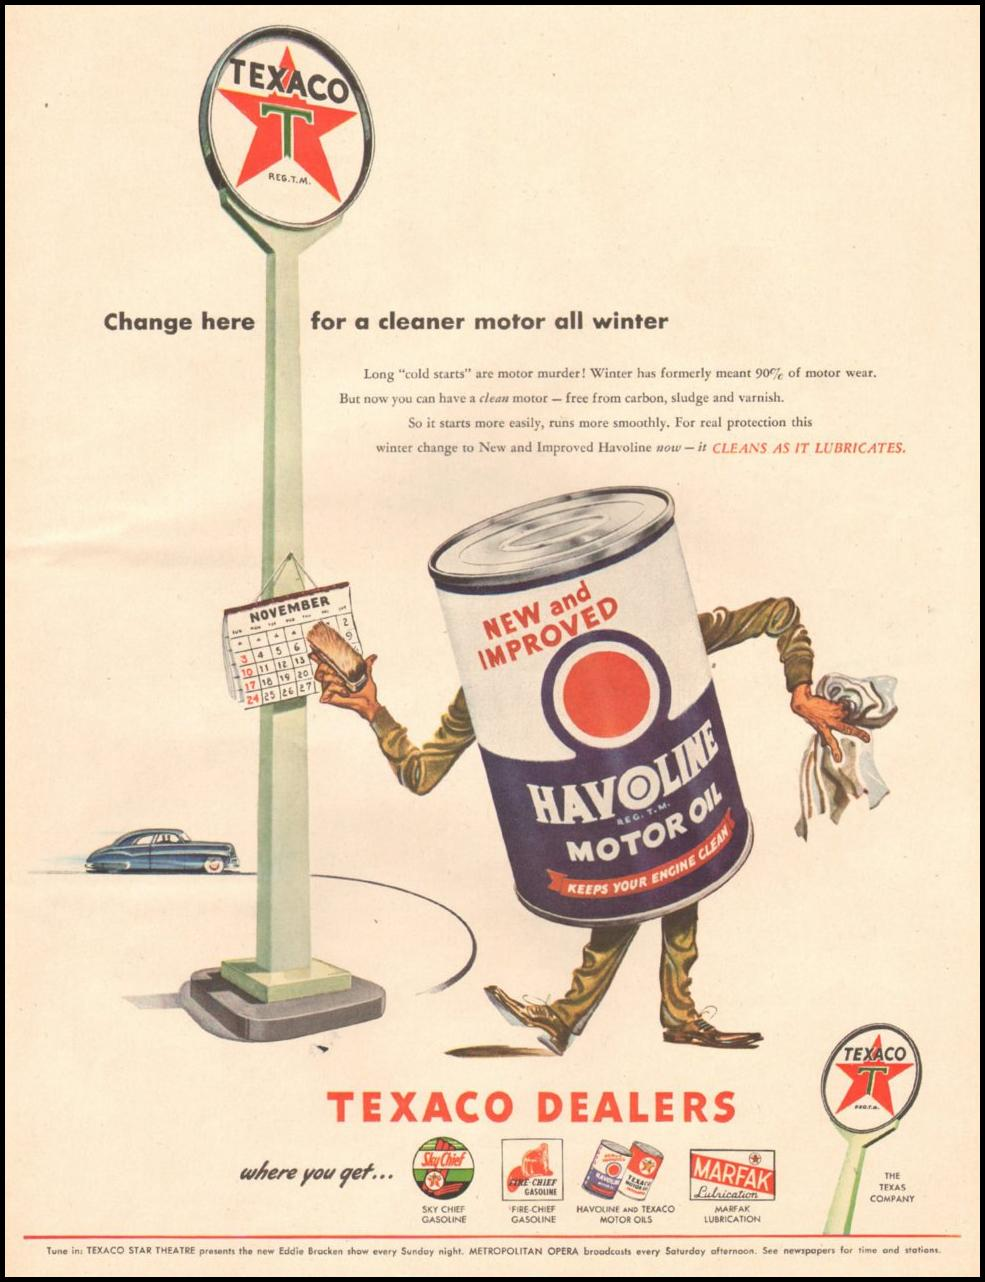 TEXACO HAVOLINE MOTOR OIL